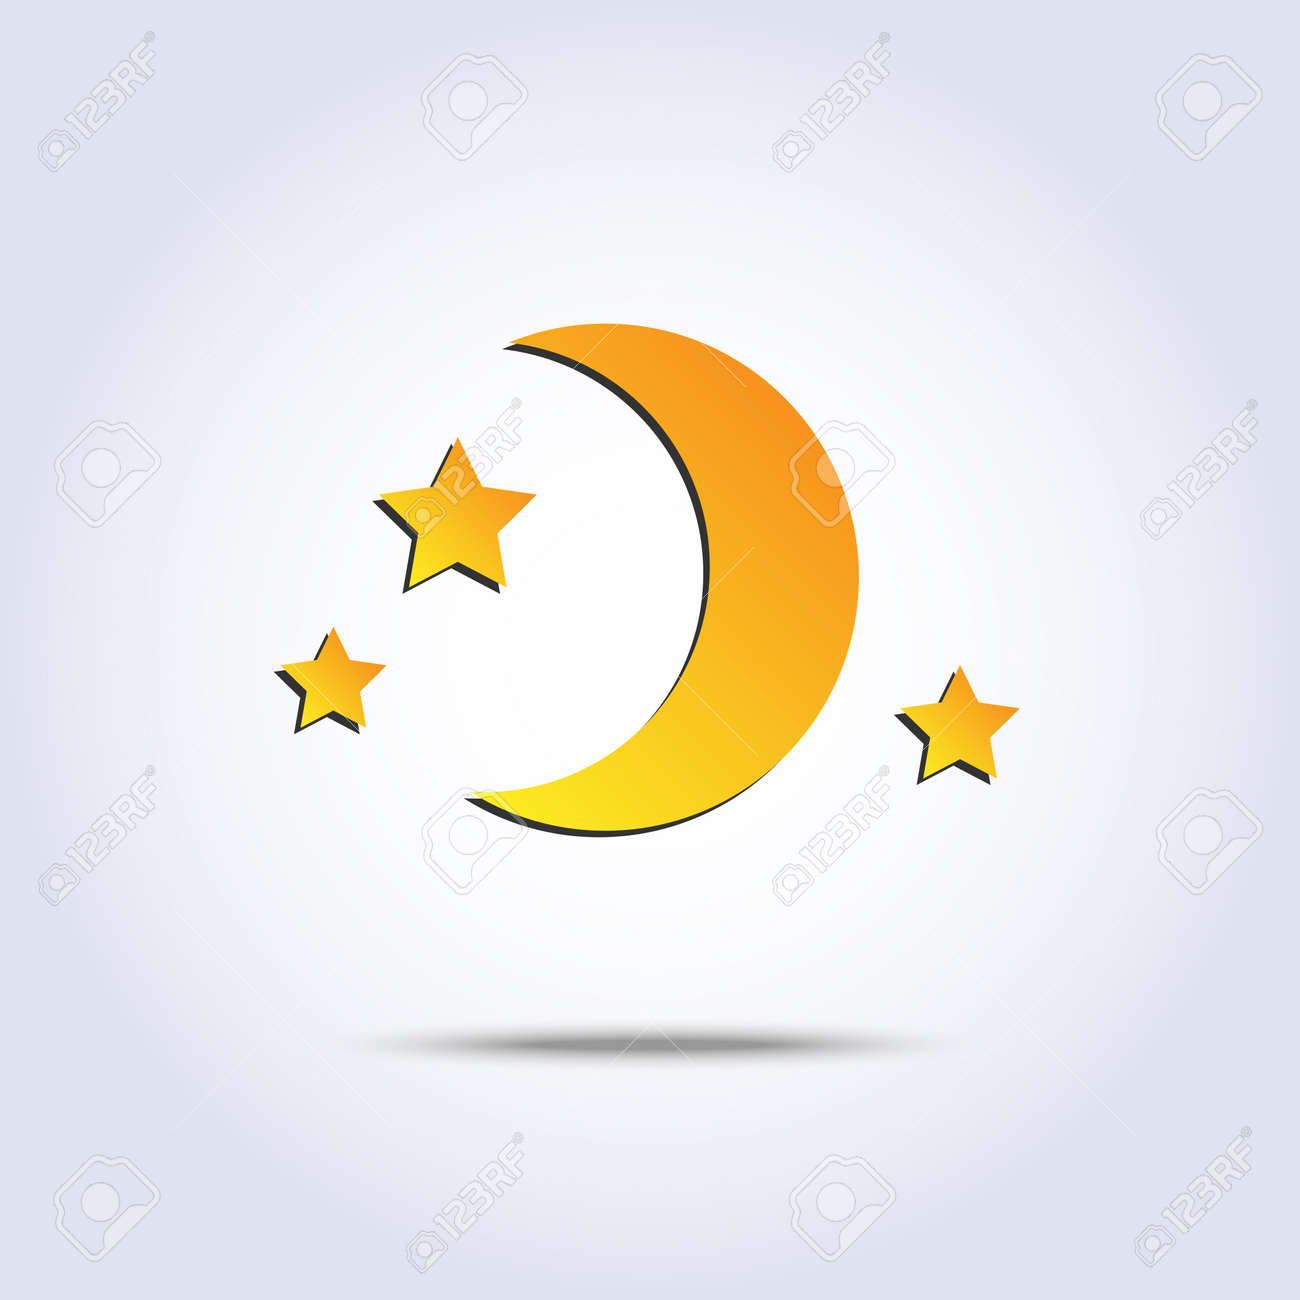 new moon and stars icon in vector Stock Vector - 29001650